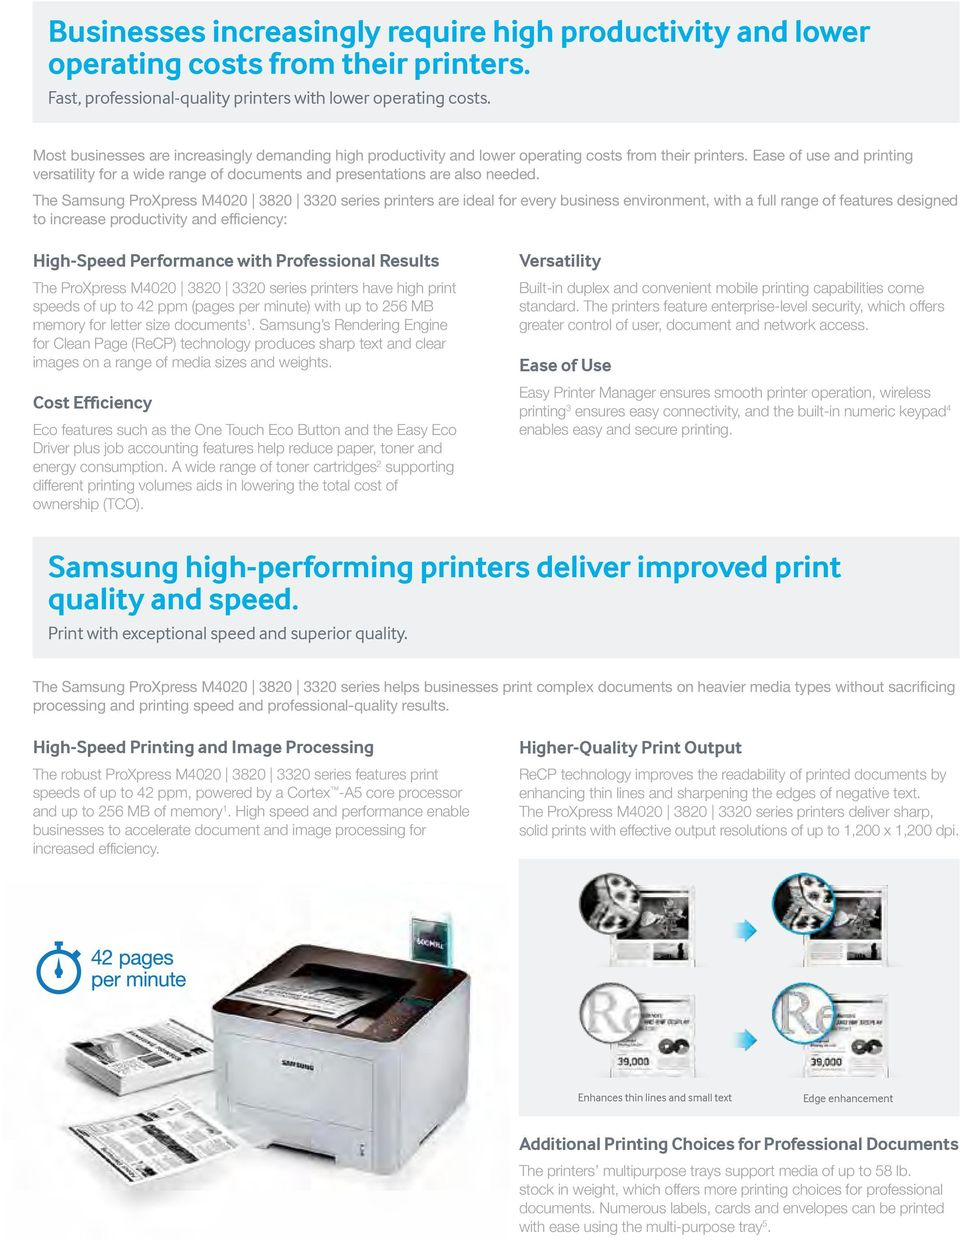 Ease of use and printing versatility for a wide range of documents and presentations are also needed.